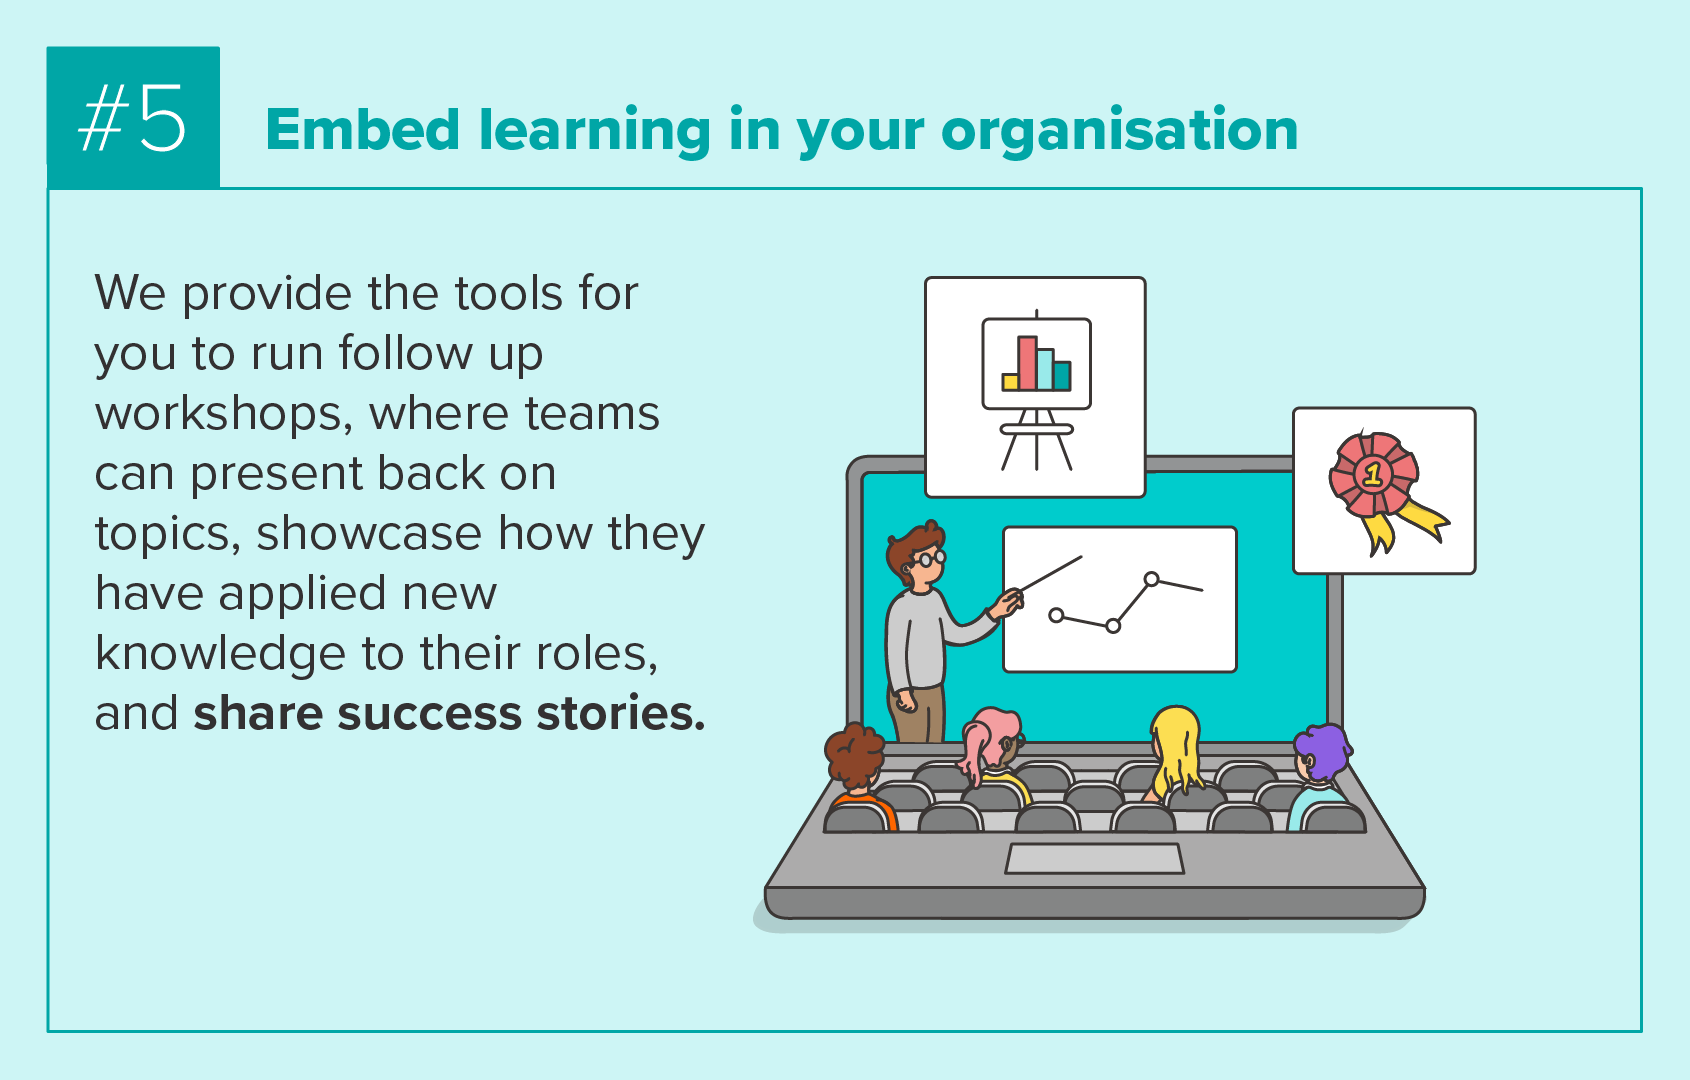 Embedding learning in your organisation